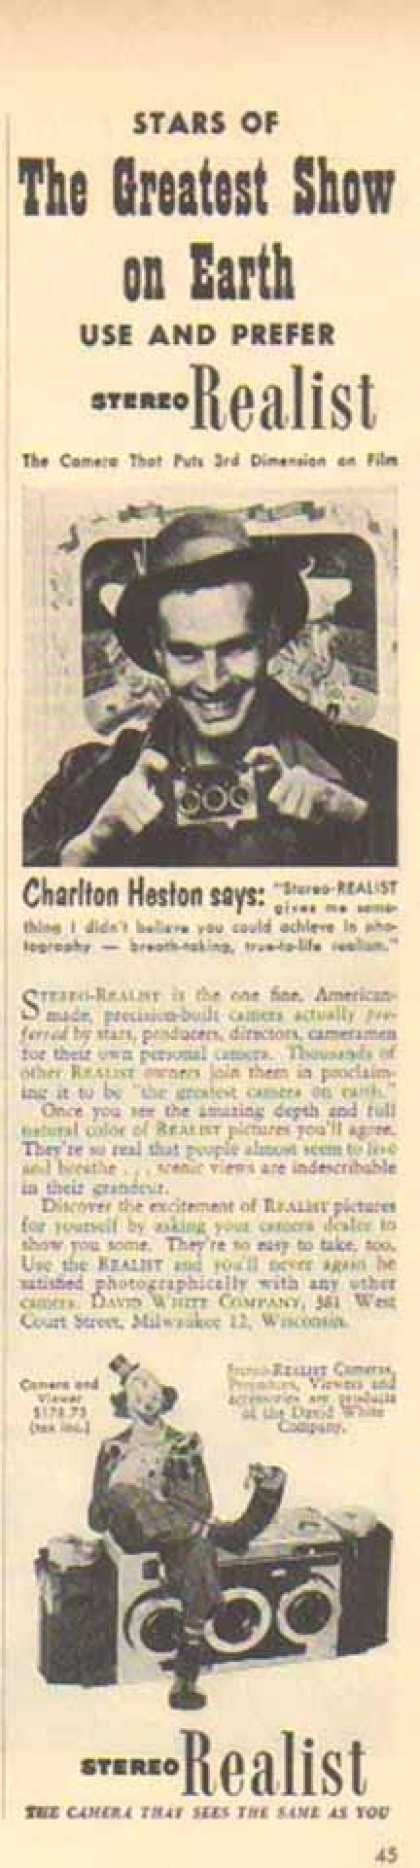 Stereo Realist Camera – Charlton Heston (1952)